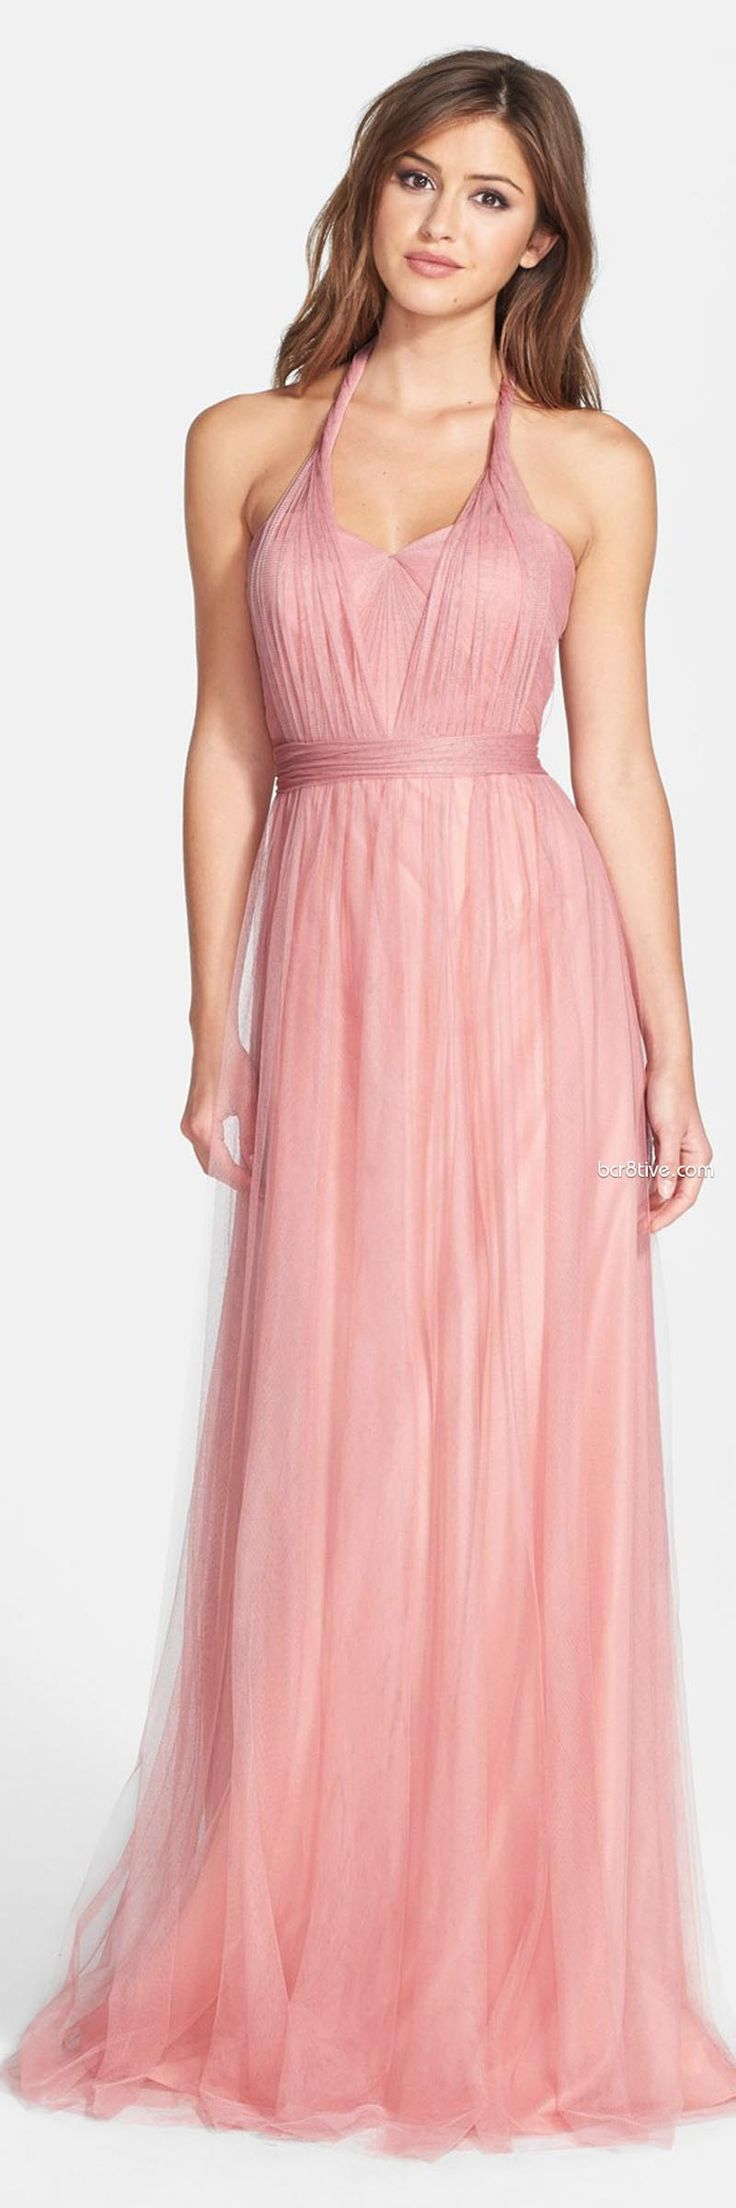 34 best vestidos images on Pinterest | My style, Clothes and ...